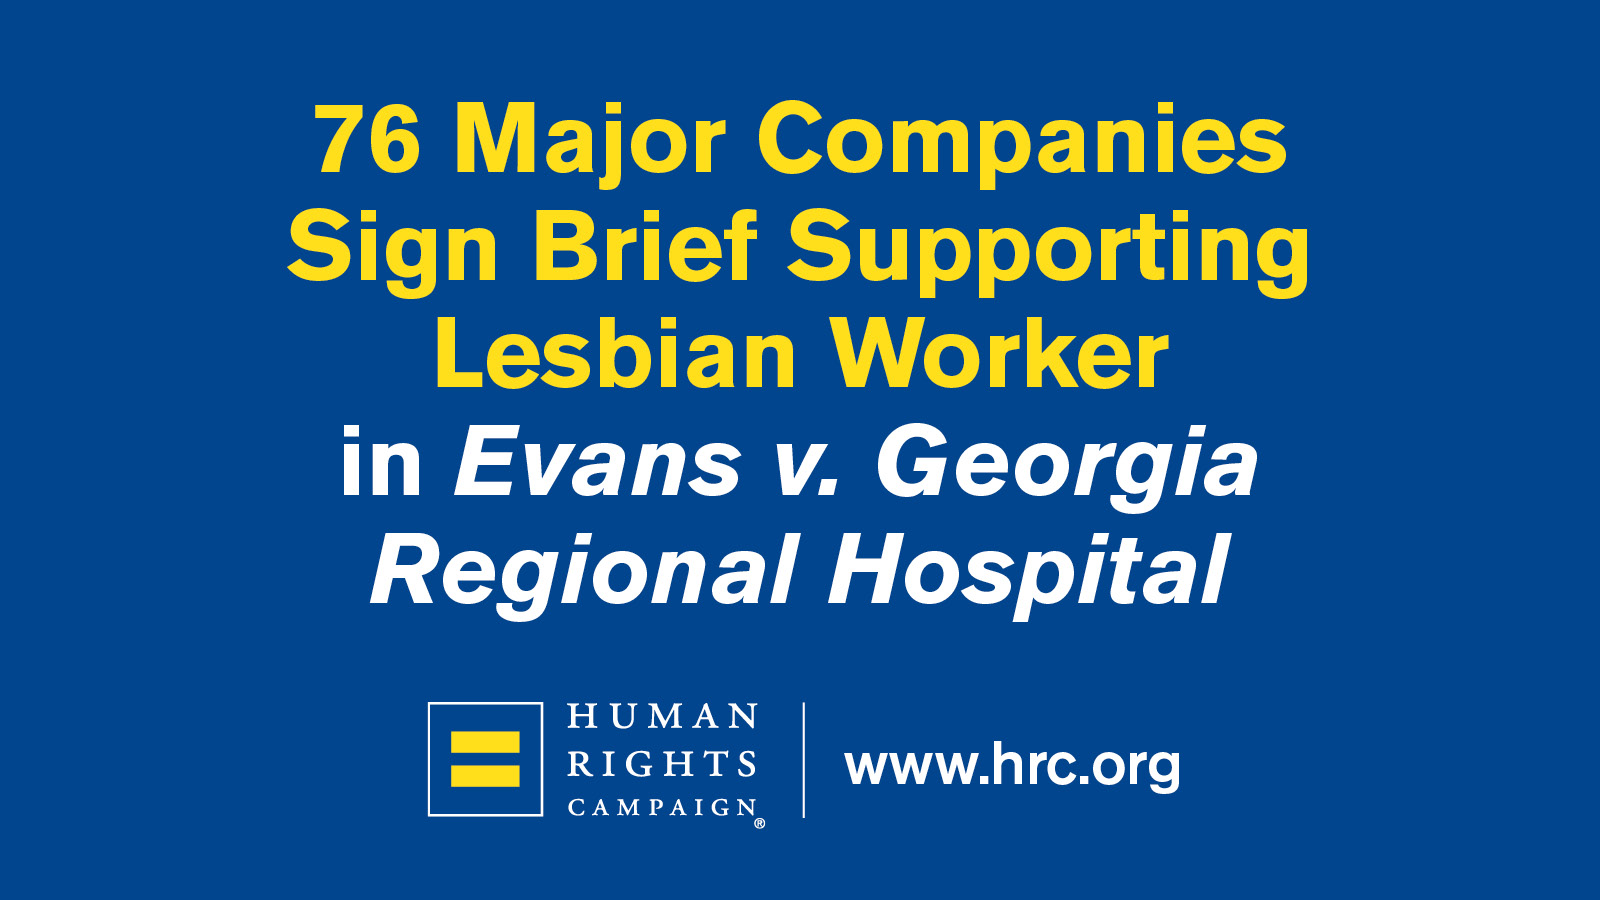 76 Major Companies Sign Brief Supporting Lesbian Worker in Supreme Court Case